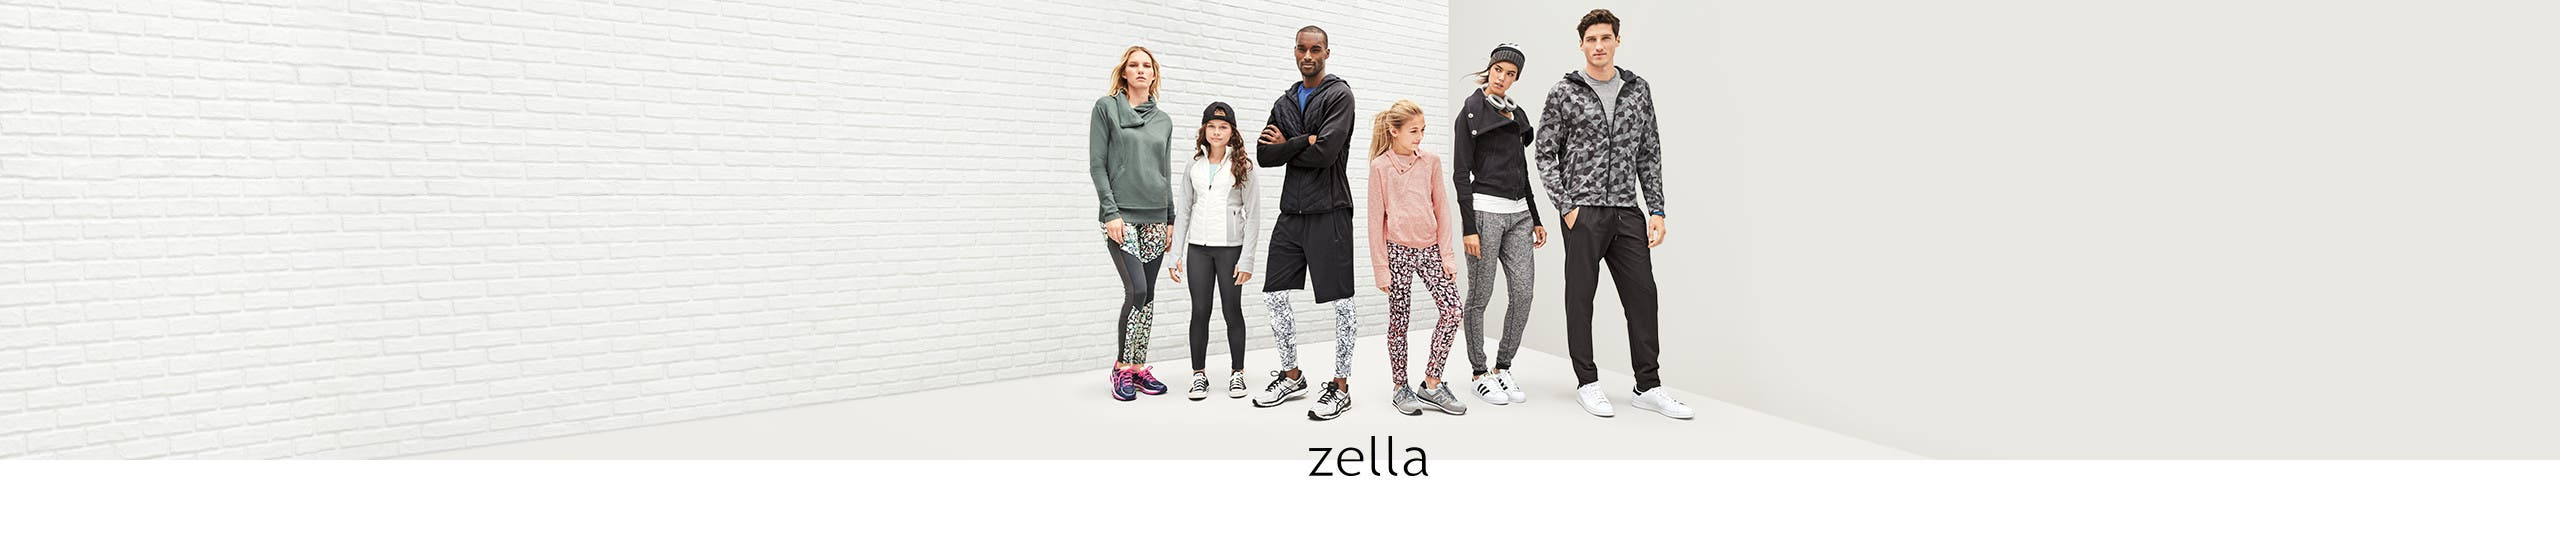 Zella for women, men and kids.